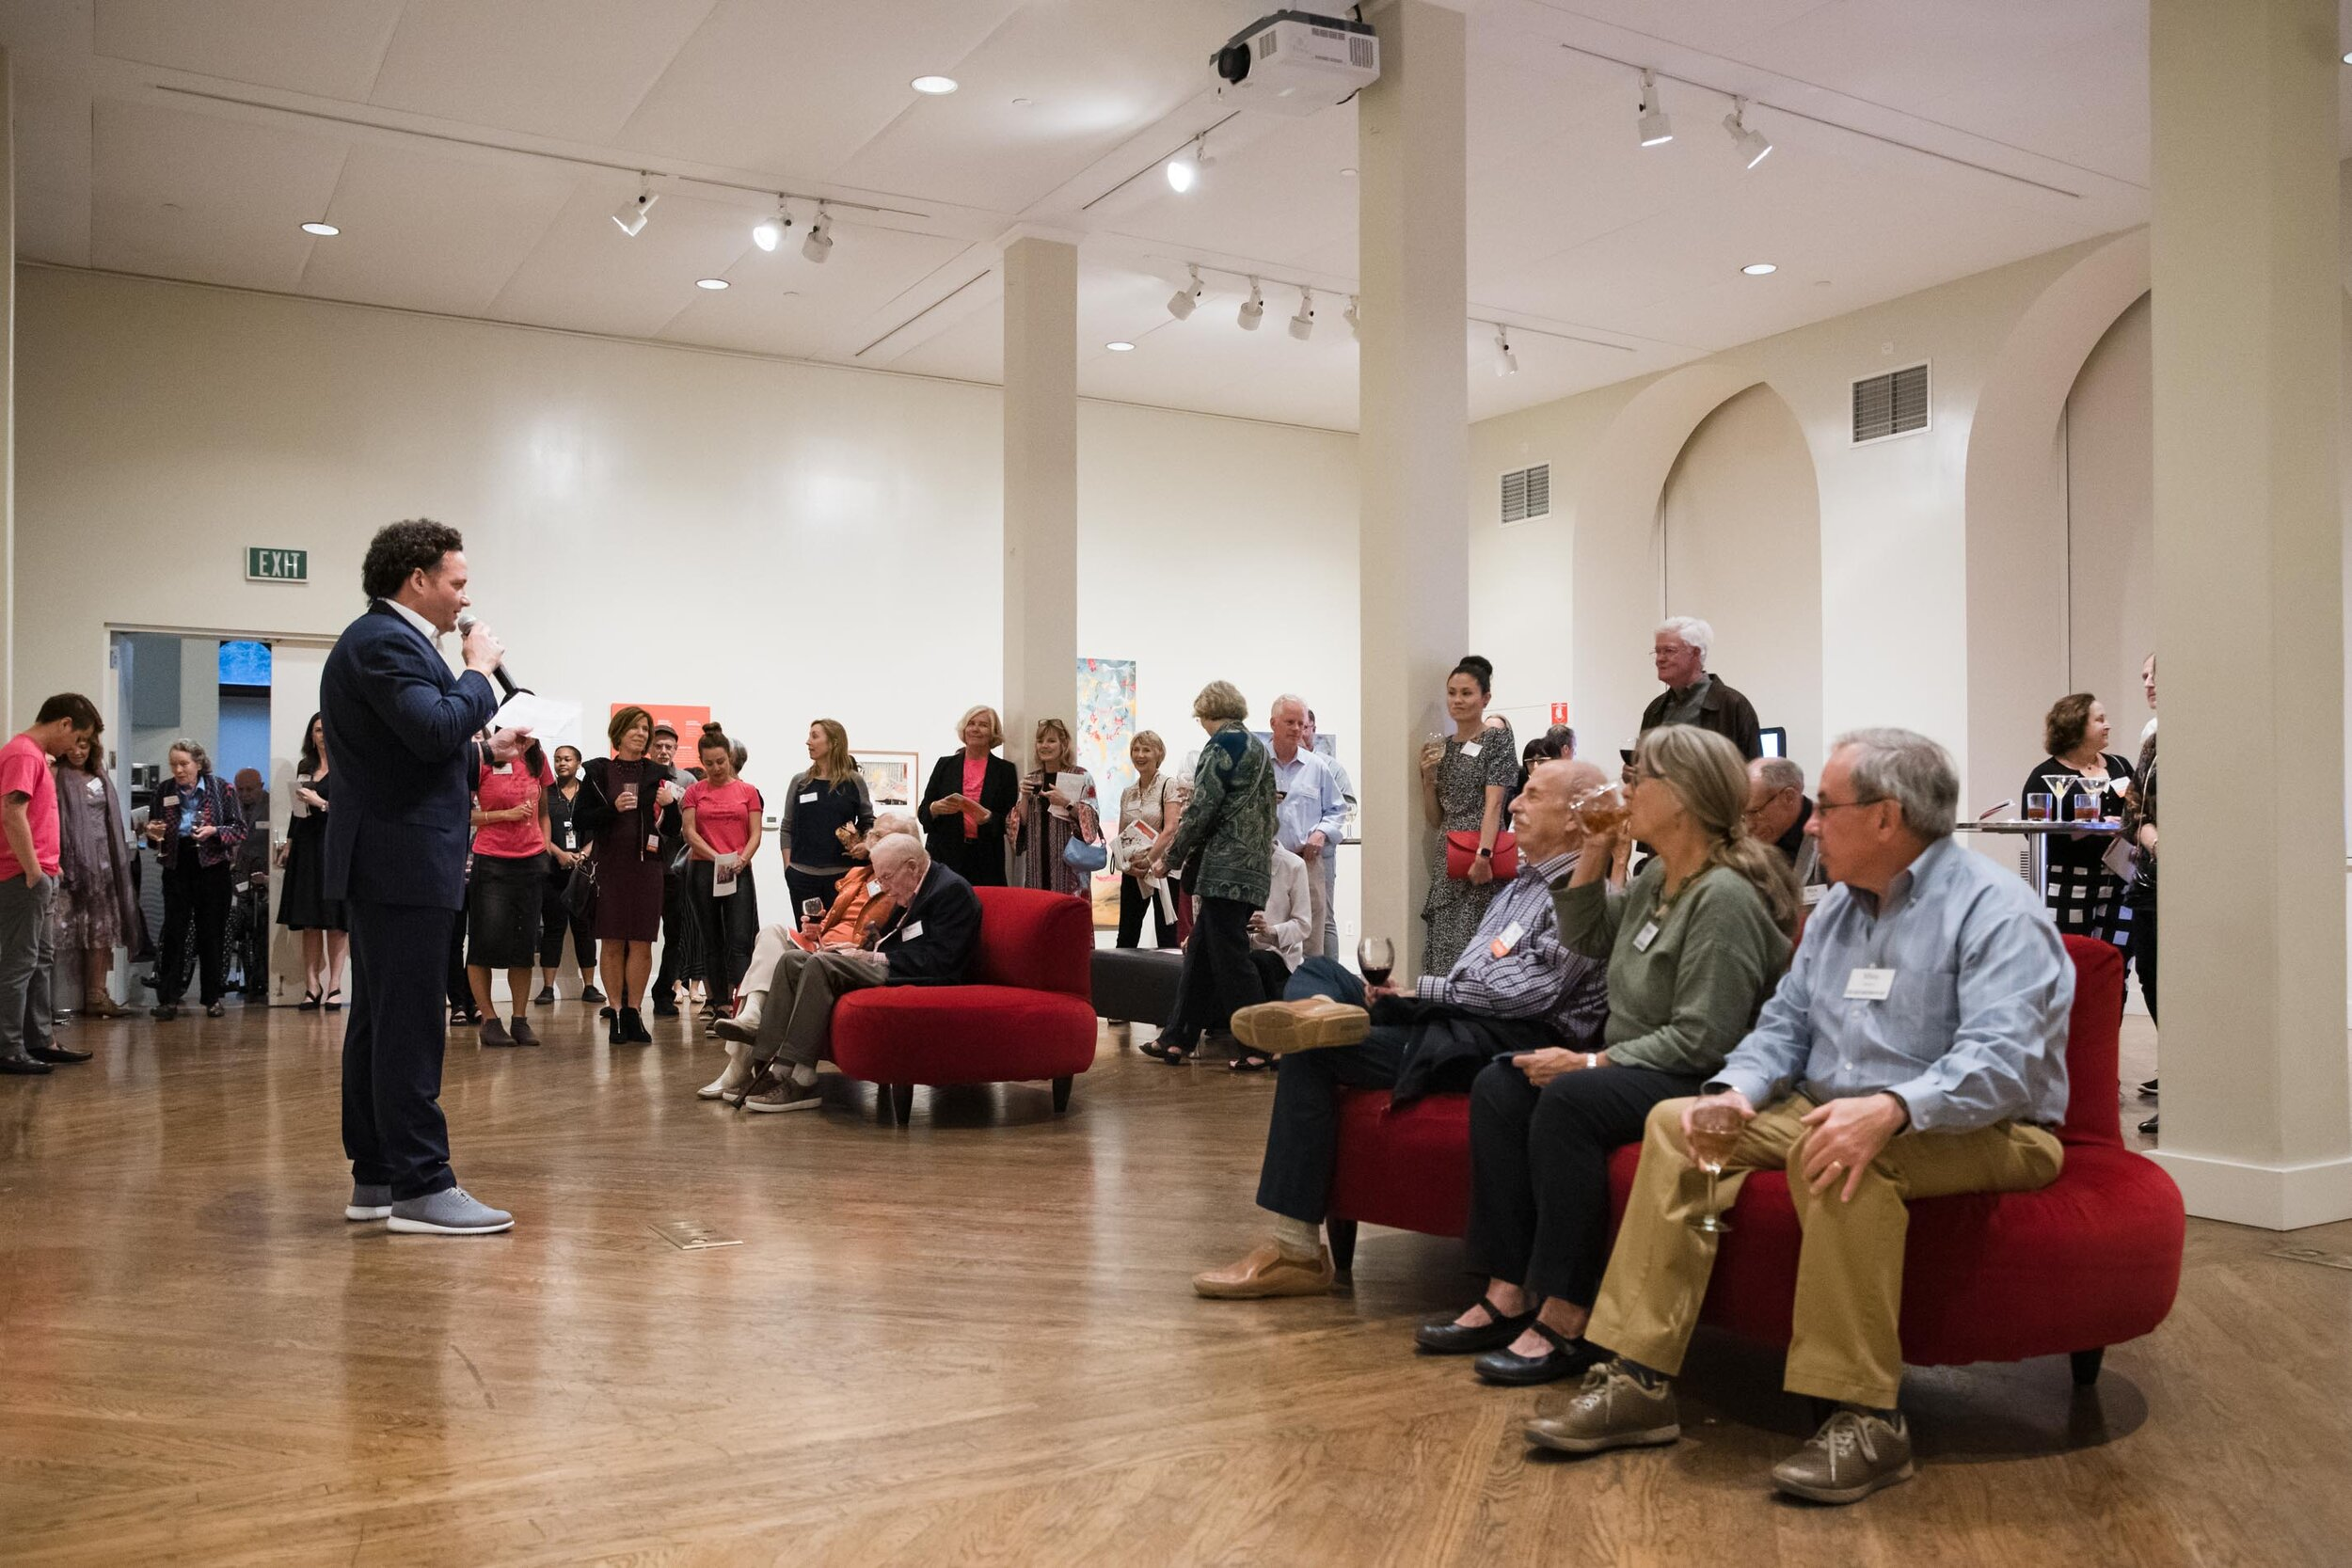 91_GalaAuctionPreview_9.16.19_photo_SharonKenney.jpg